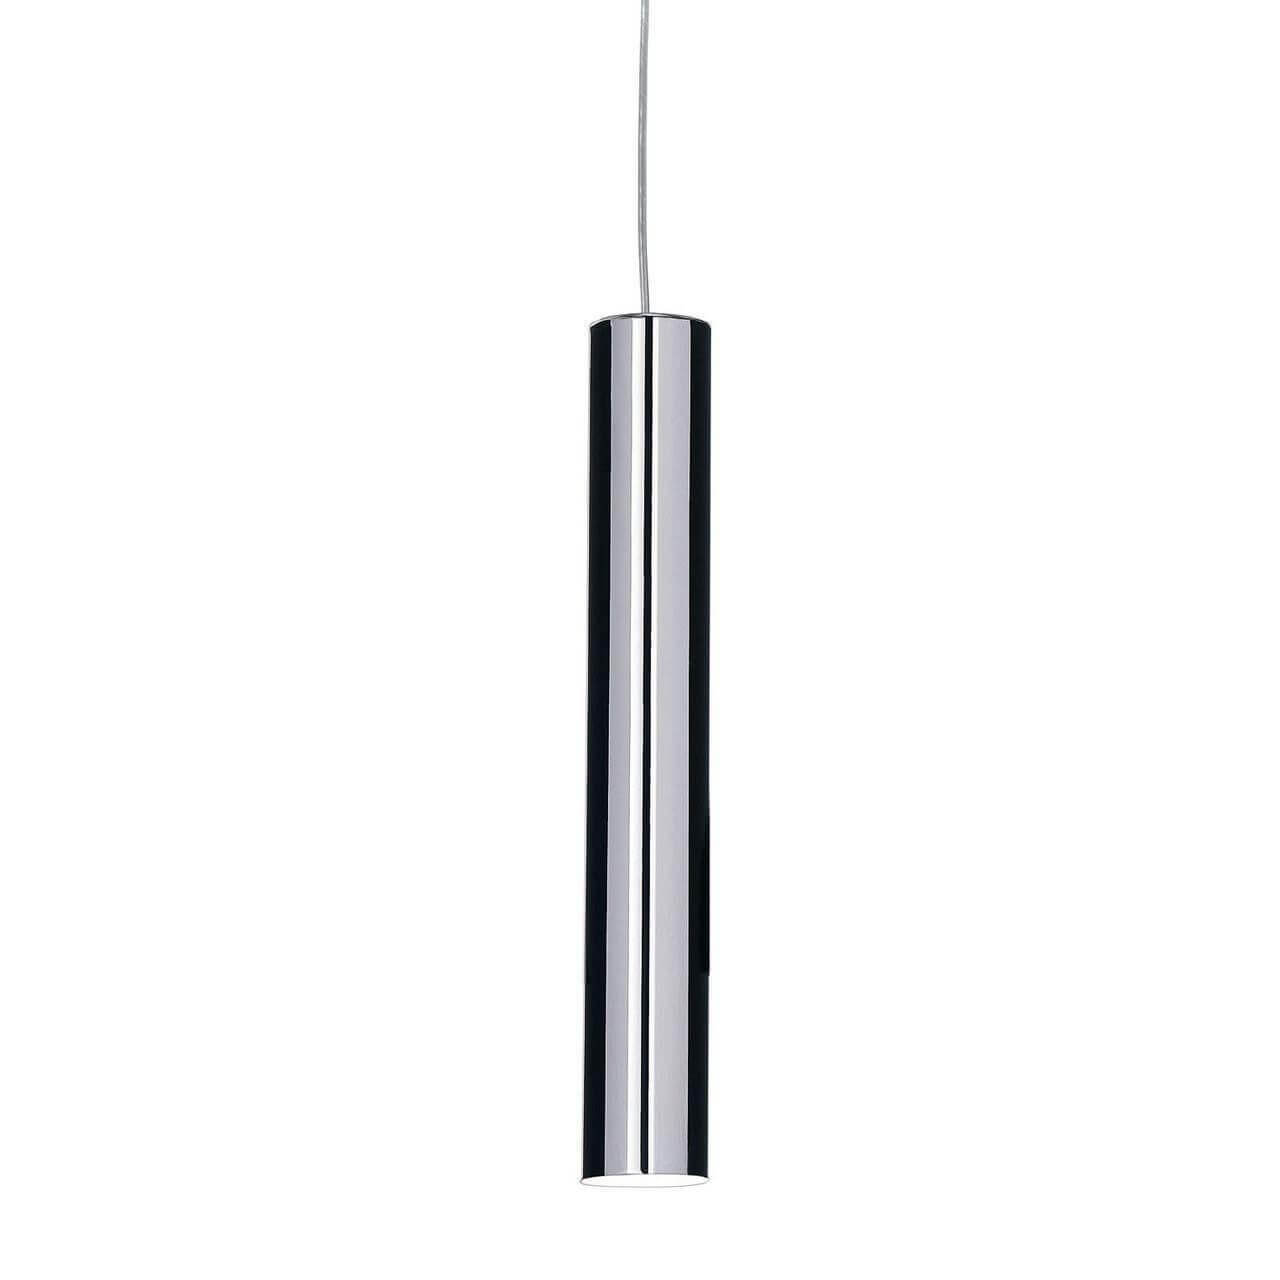 Светильник Ideal Lux Ultrathin D040 Round Cromo